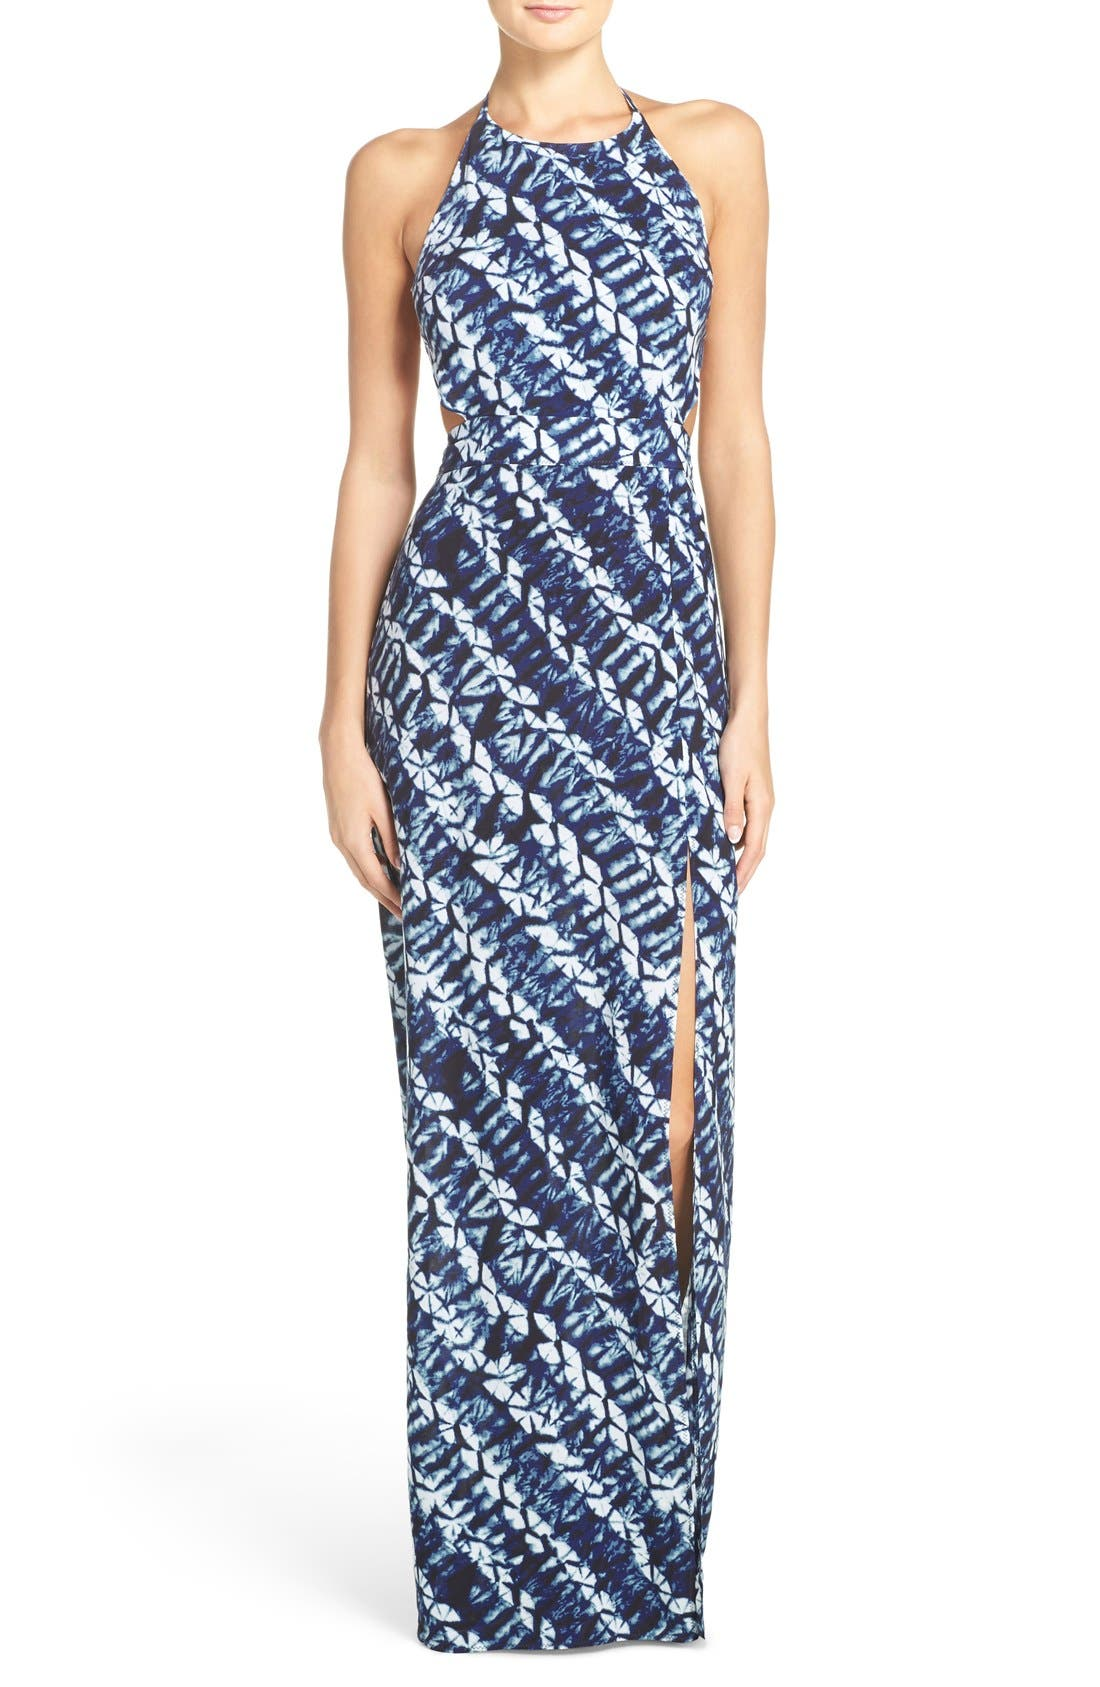 Main Image - Dolce Vita Tie-Dye Cover-Up Maxi Dress